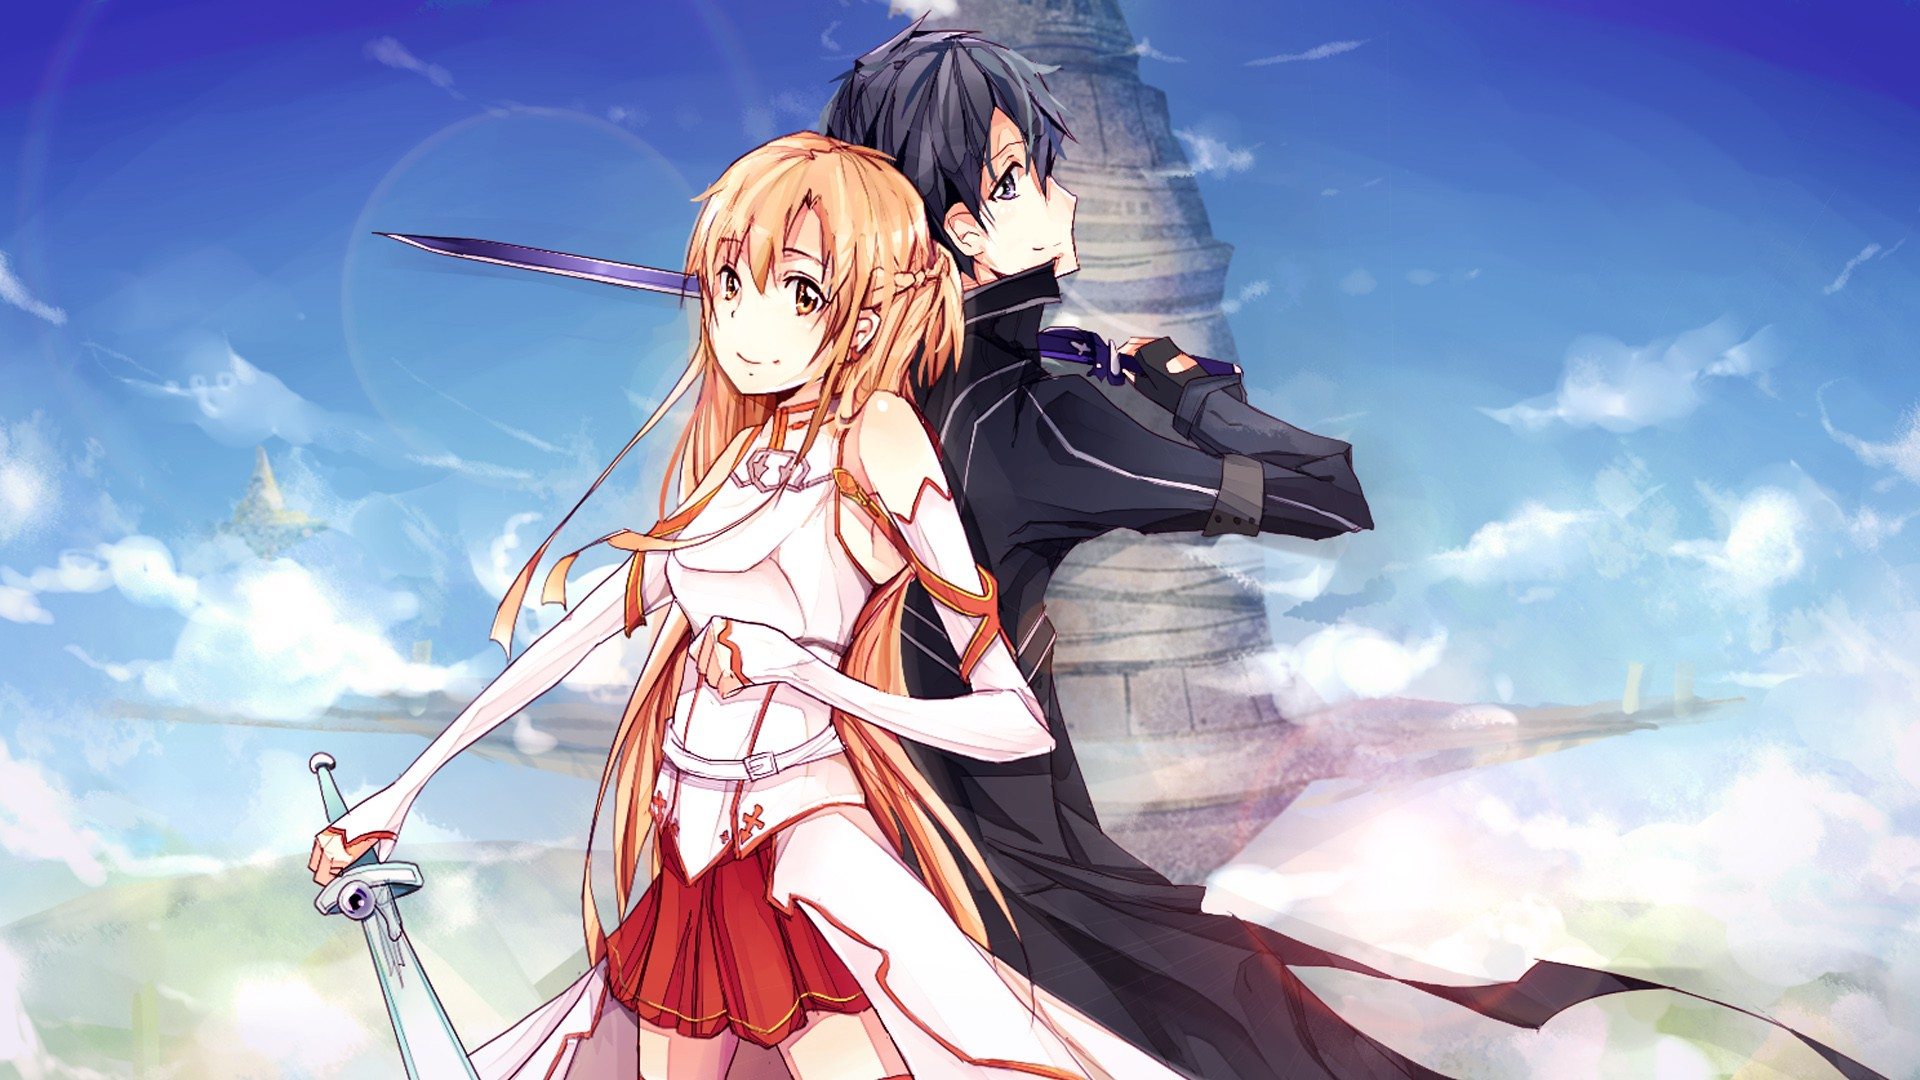 Free Download Sword Art Online Computer Wallpapers Desktop